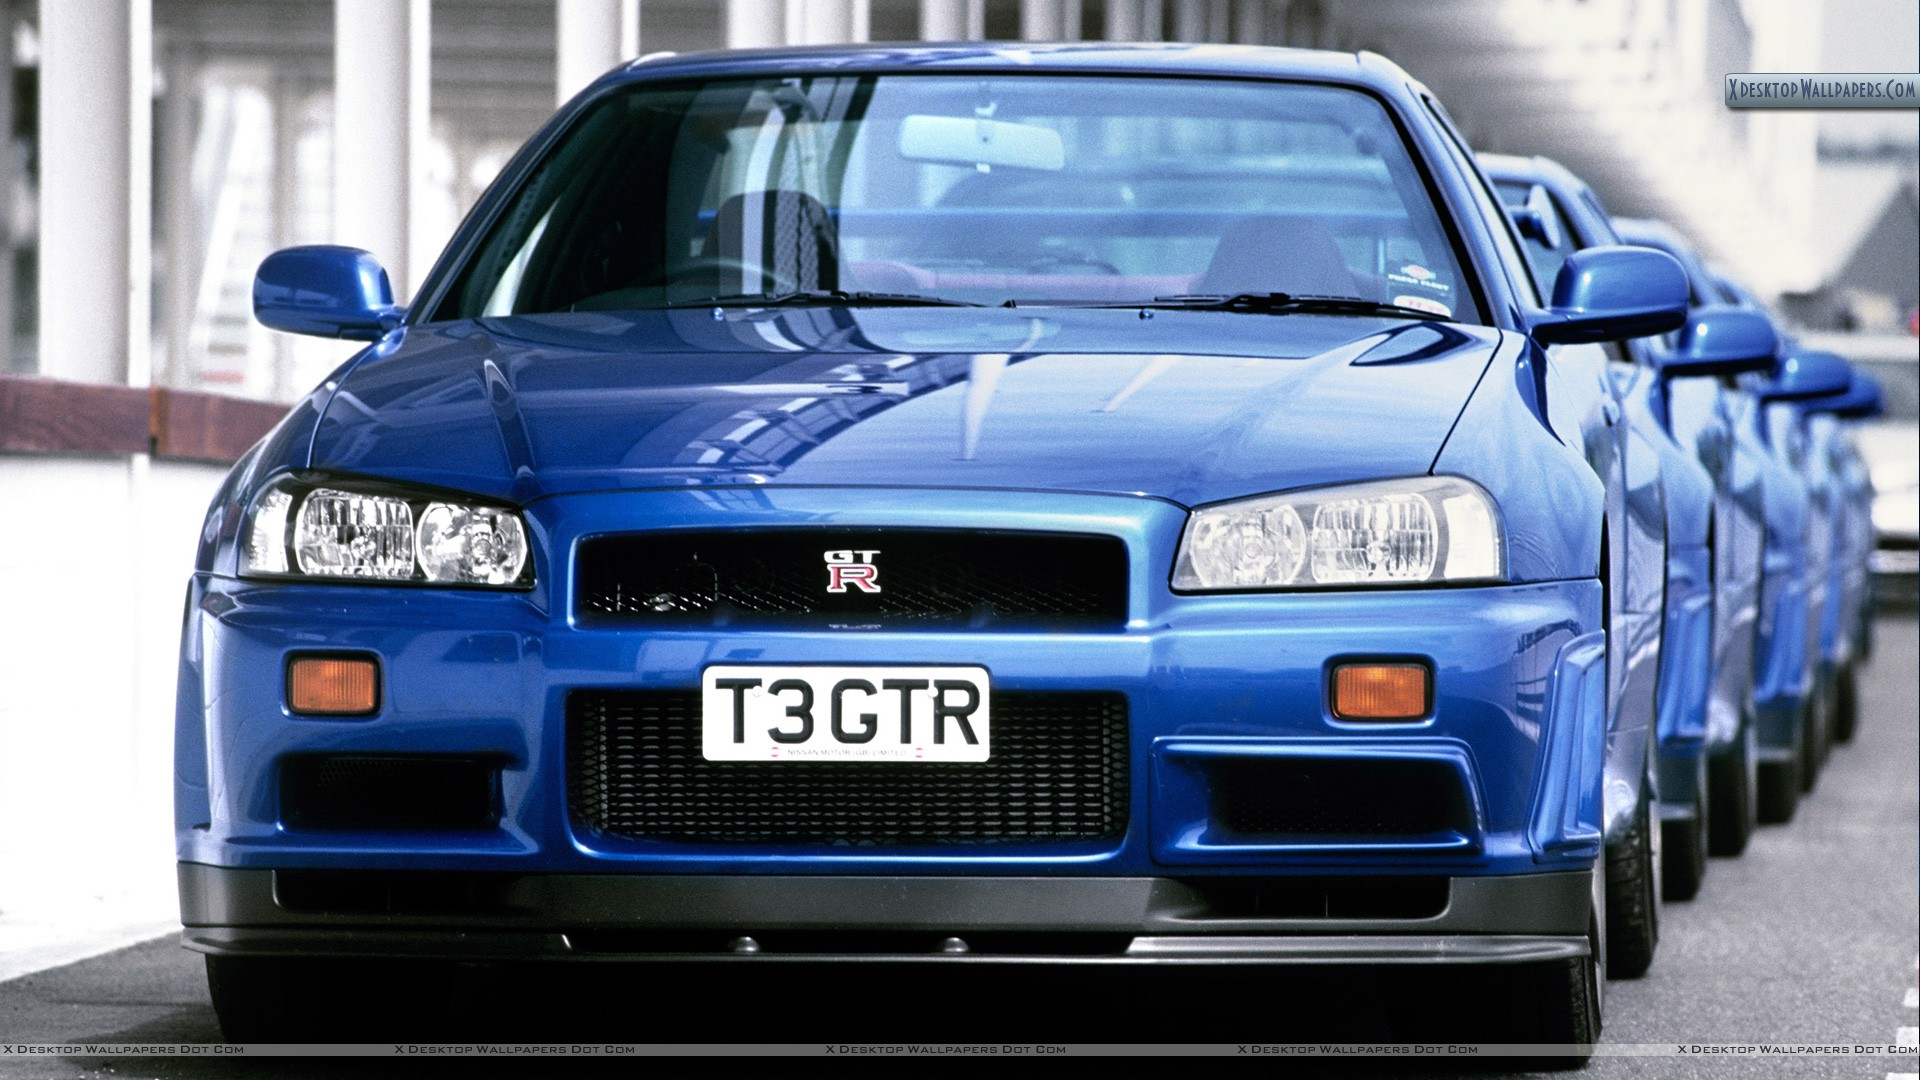 Nissan Skyline Gt R Wallpapers Photos Images In Hd Pink Gtr R34 Download 22 Oct 2011 View Wallpaper Details